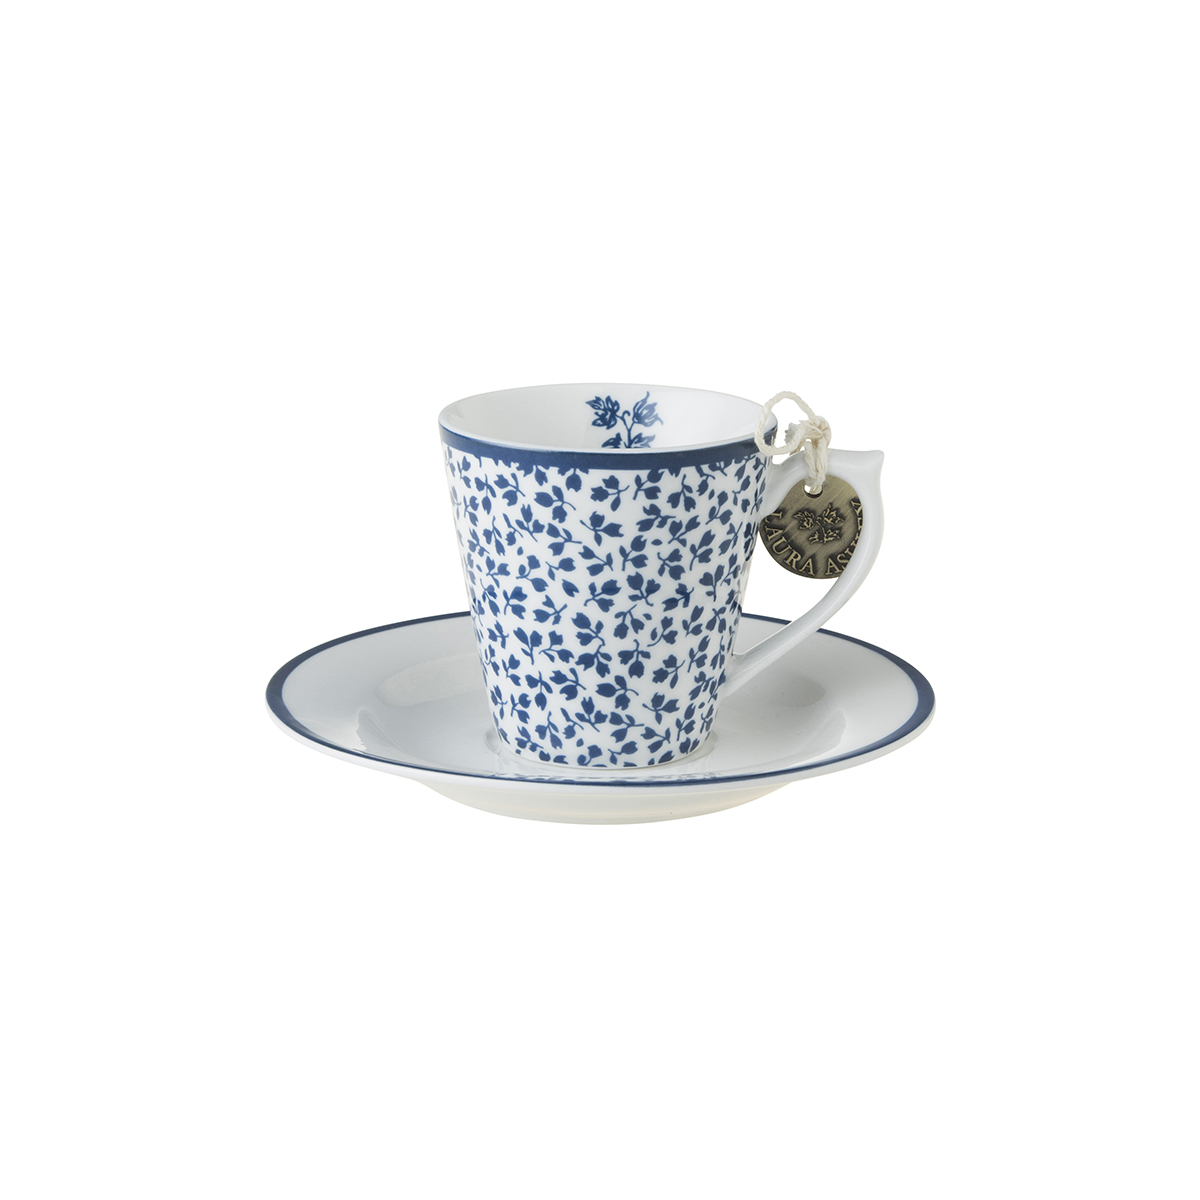 kop-en-schotel-espresso-floris-laura-ashley-178693-v